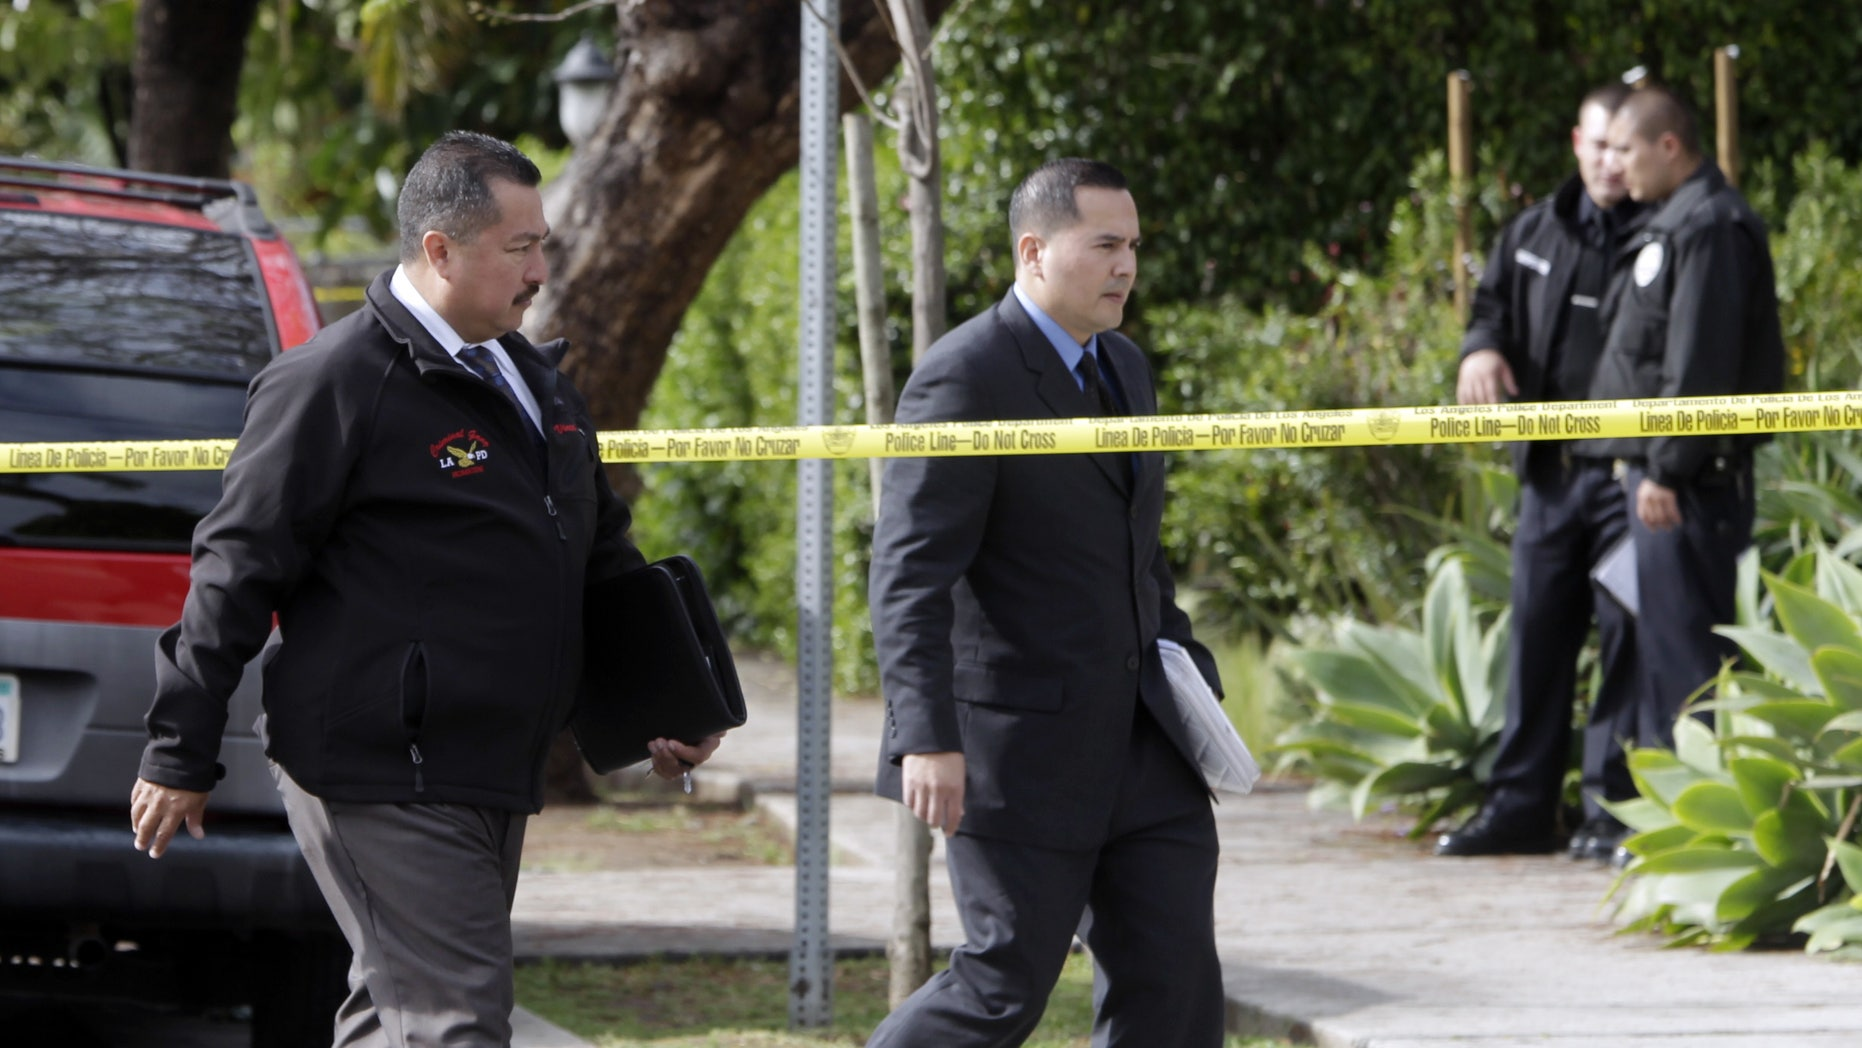 April 11: LAPD investigators work at the scene of a shooting of two USC students in Los Angeles. Police said a gunman opened fire on a BMW near the University of Southern California campus, killing two international students from China in what may have been a bungled carjacking attempt.